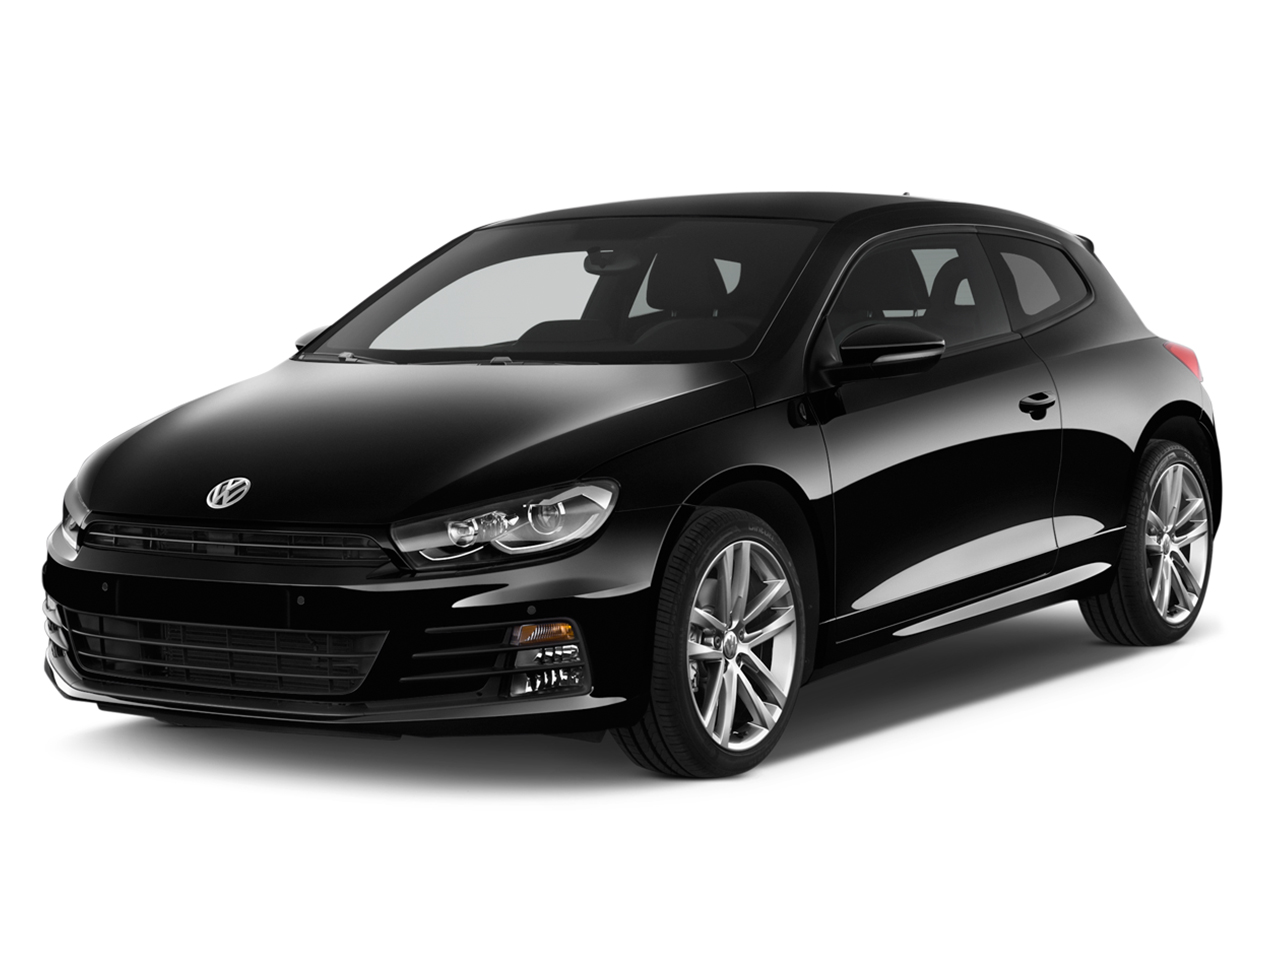 2017 volkswagen scirocco prices in uae gulf specs reviews for dubai abu dhabi and sharjah. Black Bedroom Furniture Sets. Home Design Ideas